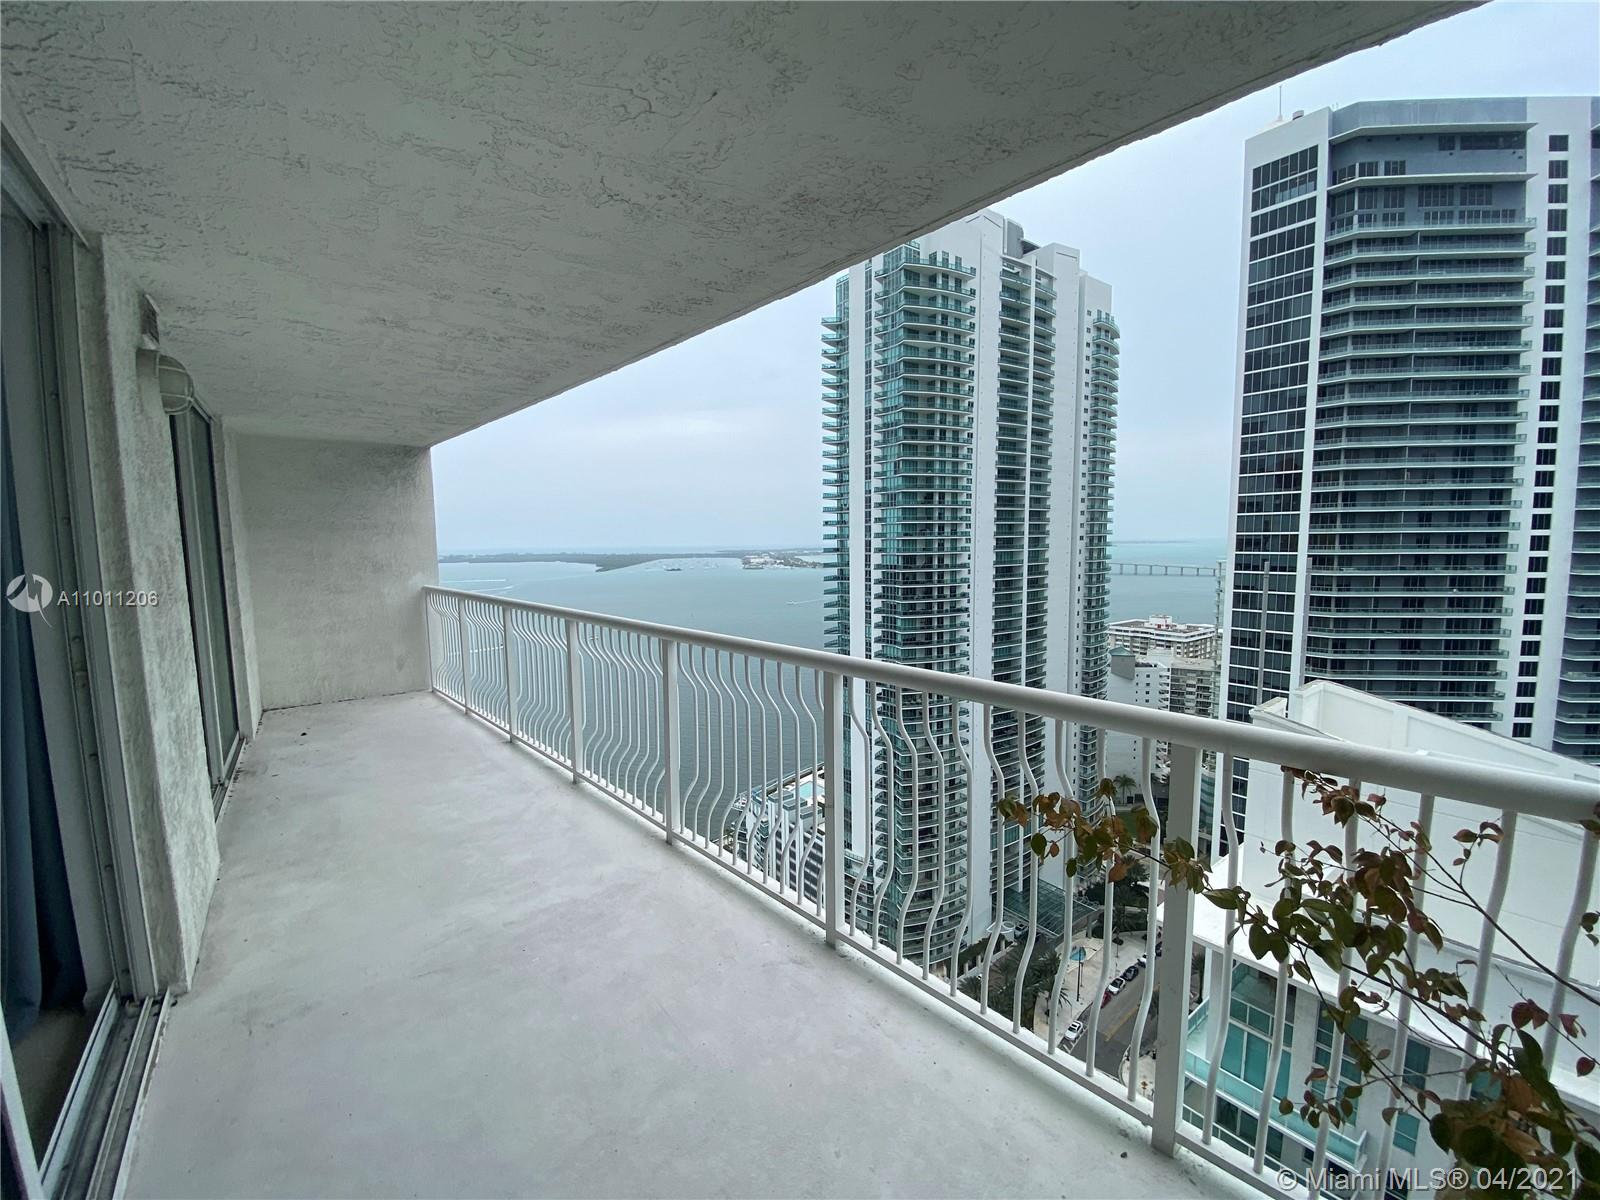 Club at Brickell #3405 - 1200 BRICKELL BAY DR #3405, Miami, FL 33131